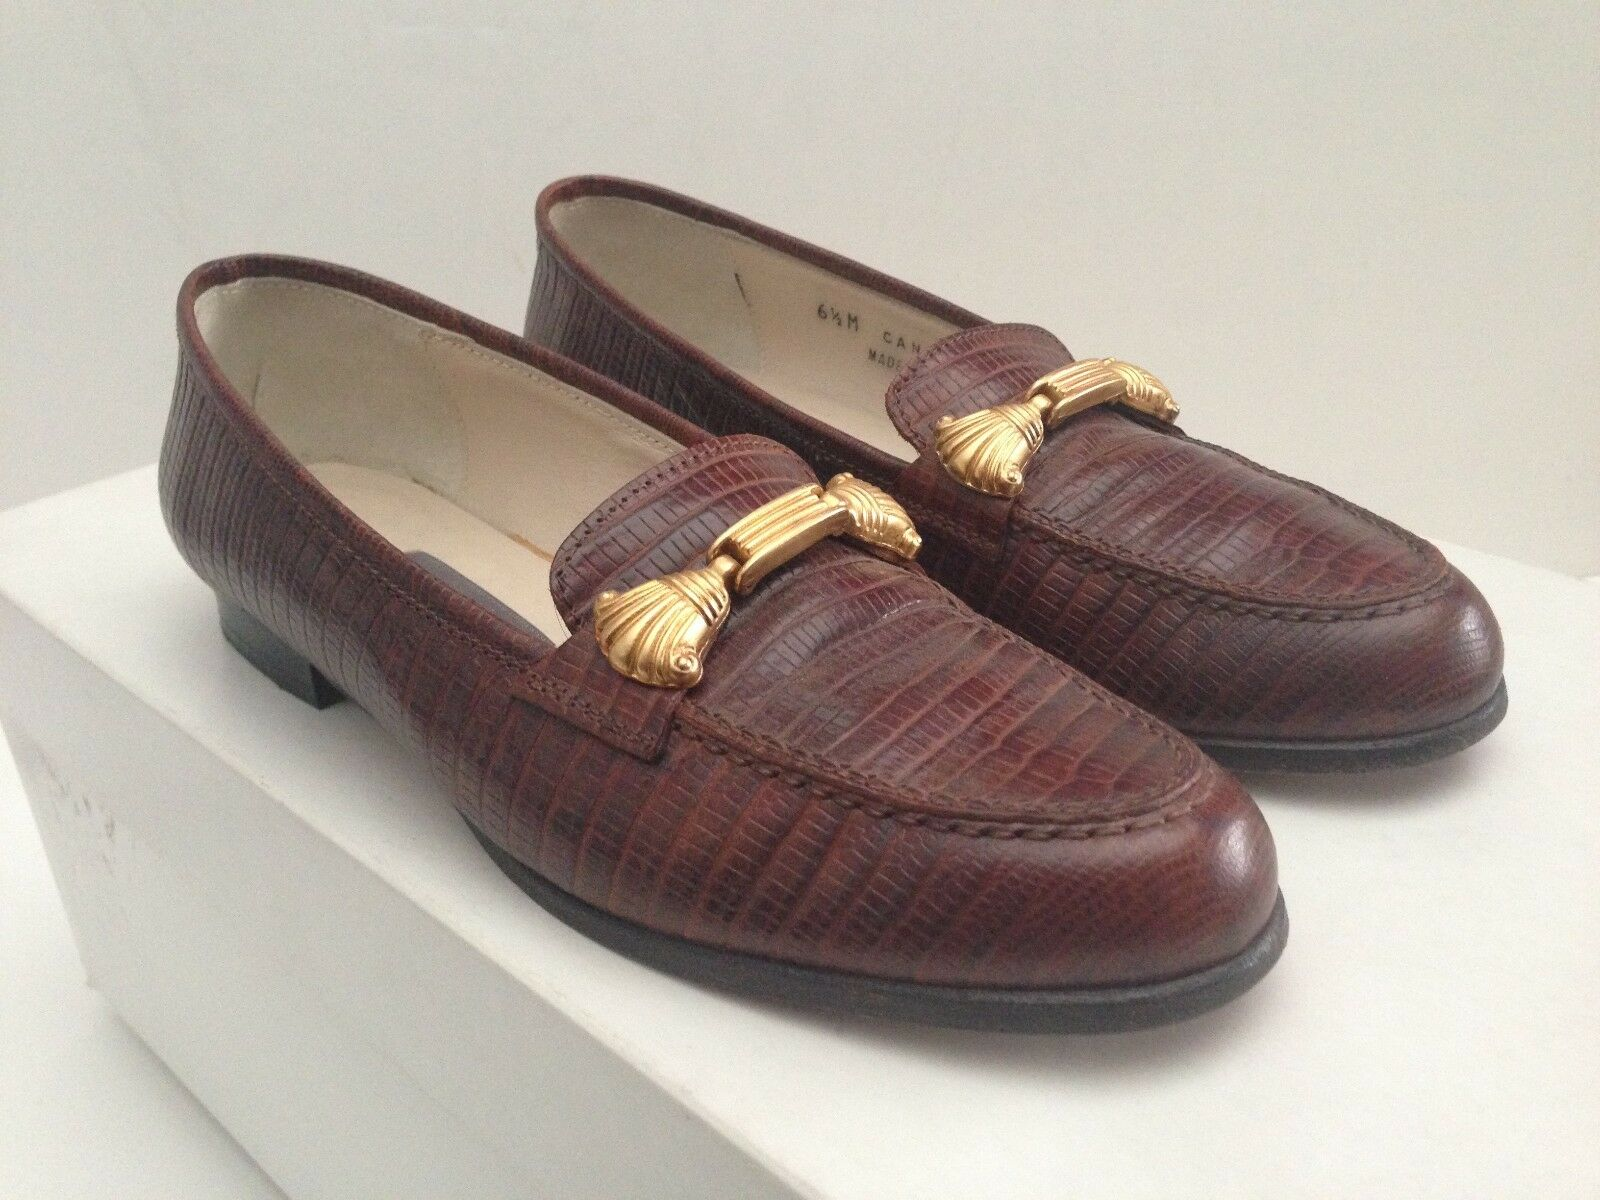 BALLY donna LIZARD SKIN LEATHER LOAFERS oro TONE BRAIDED PATTERN VAMP Dimensione 6.5